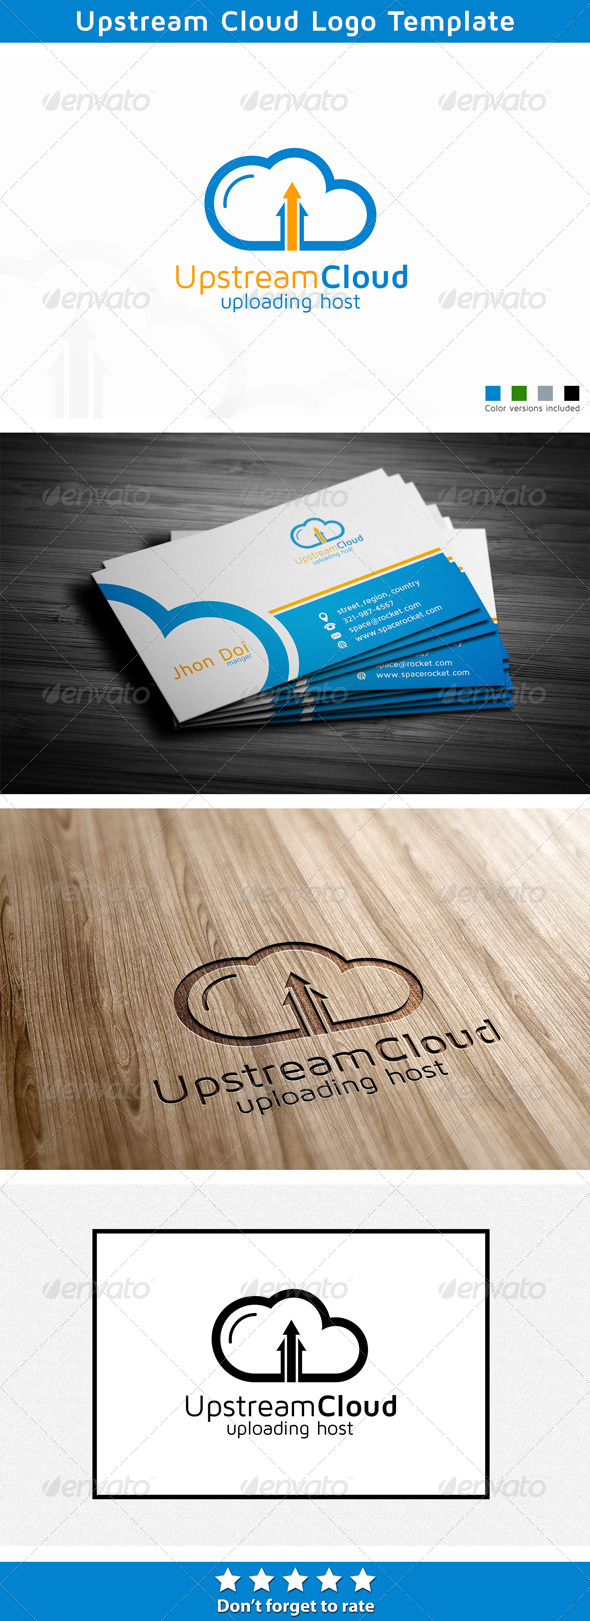 GraphicRiver Upstream Cloud 5709275